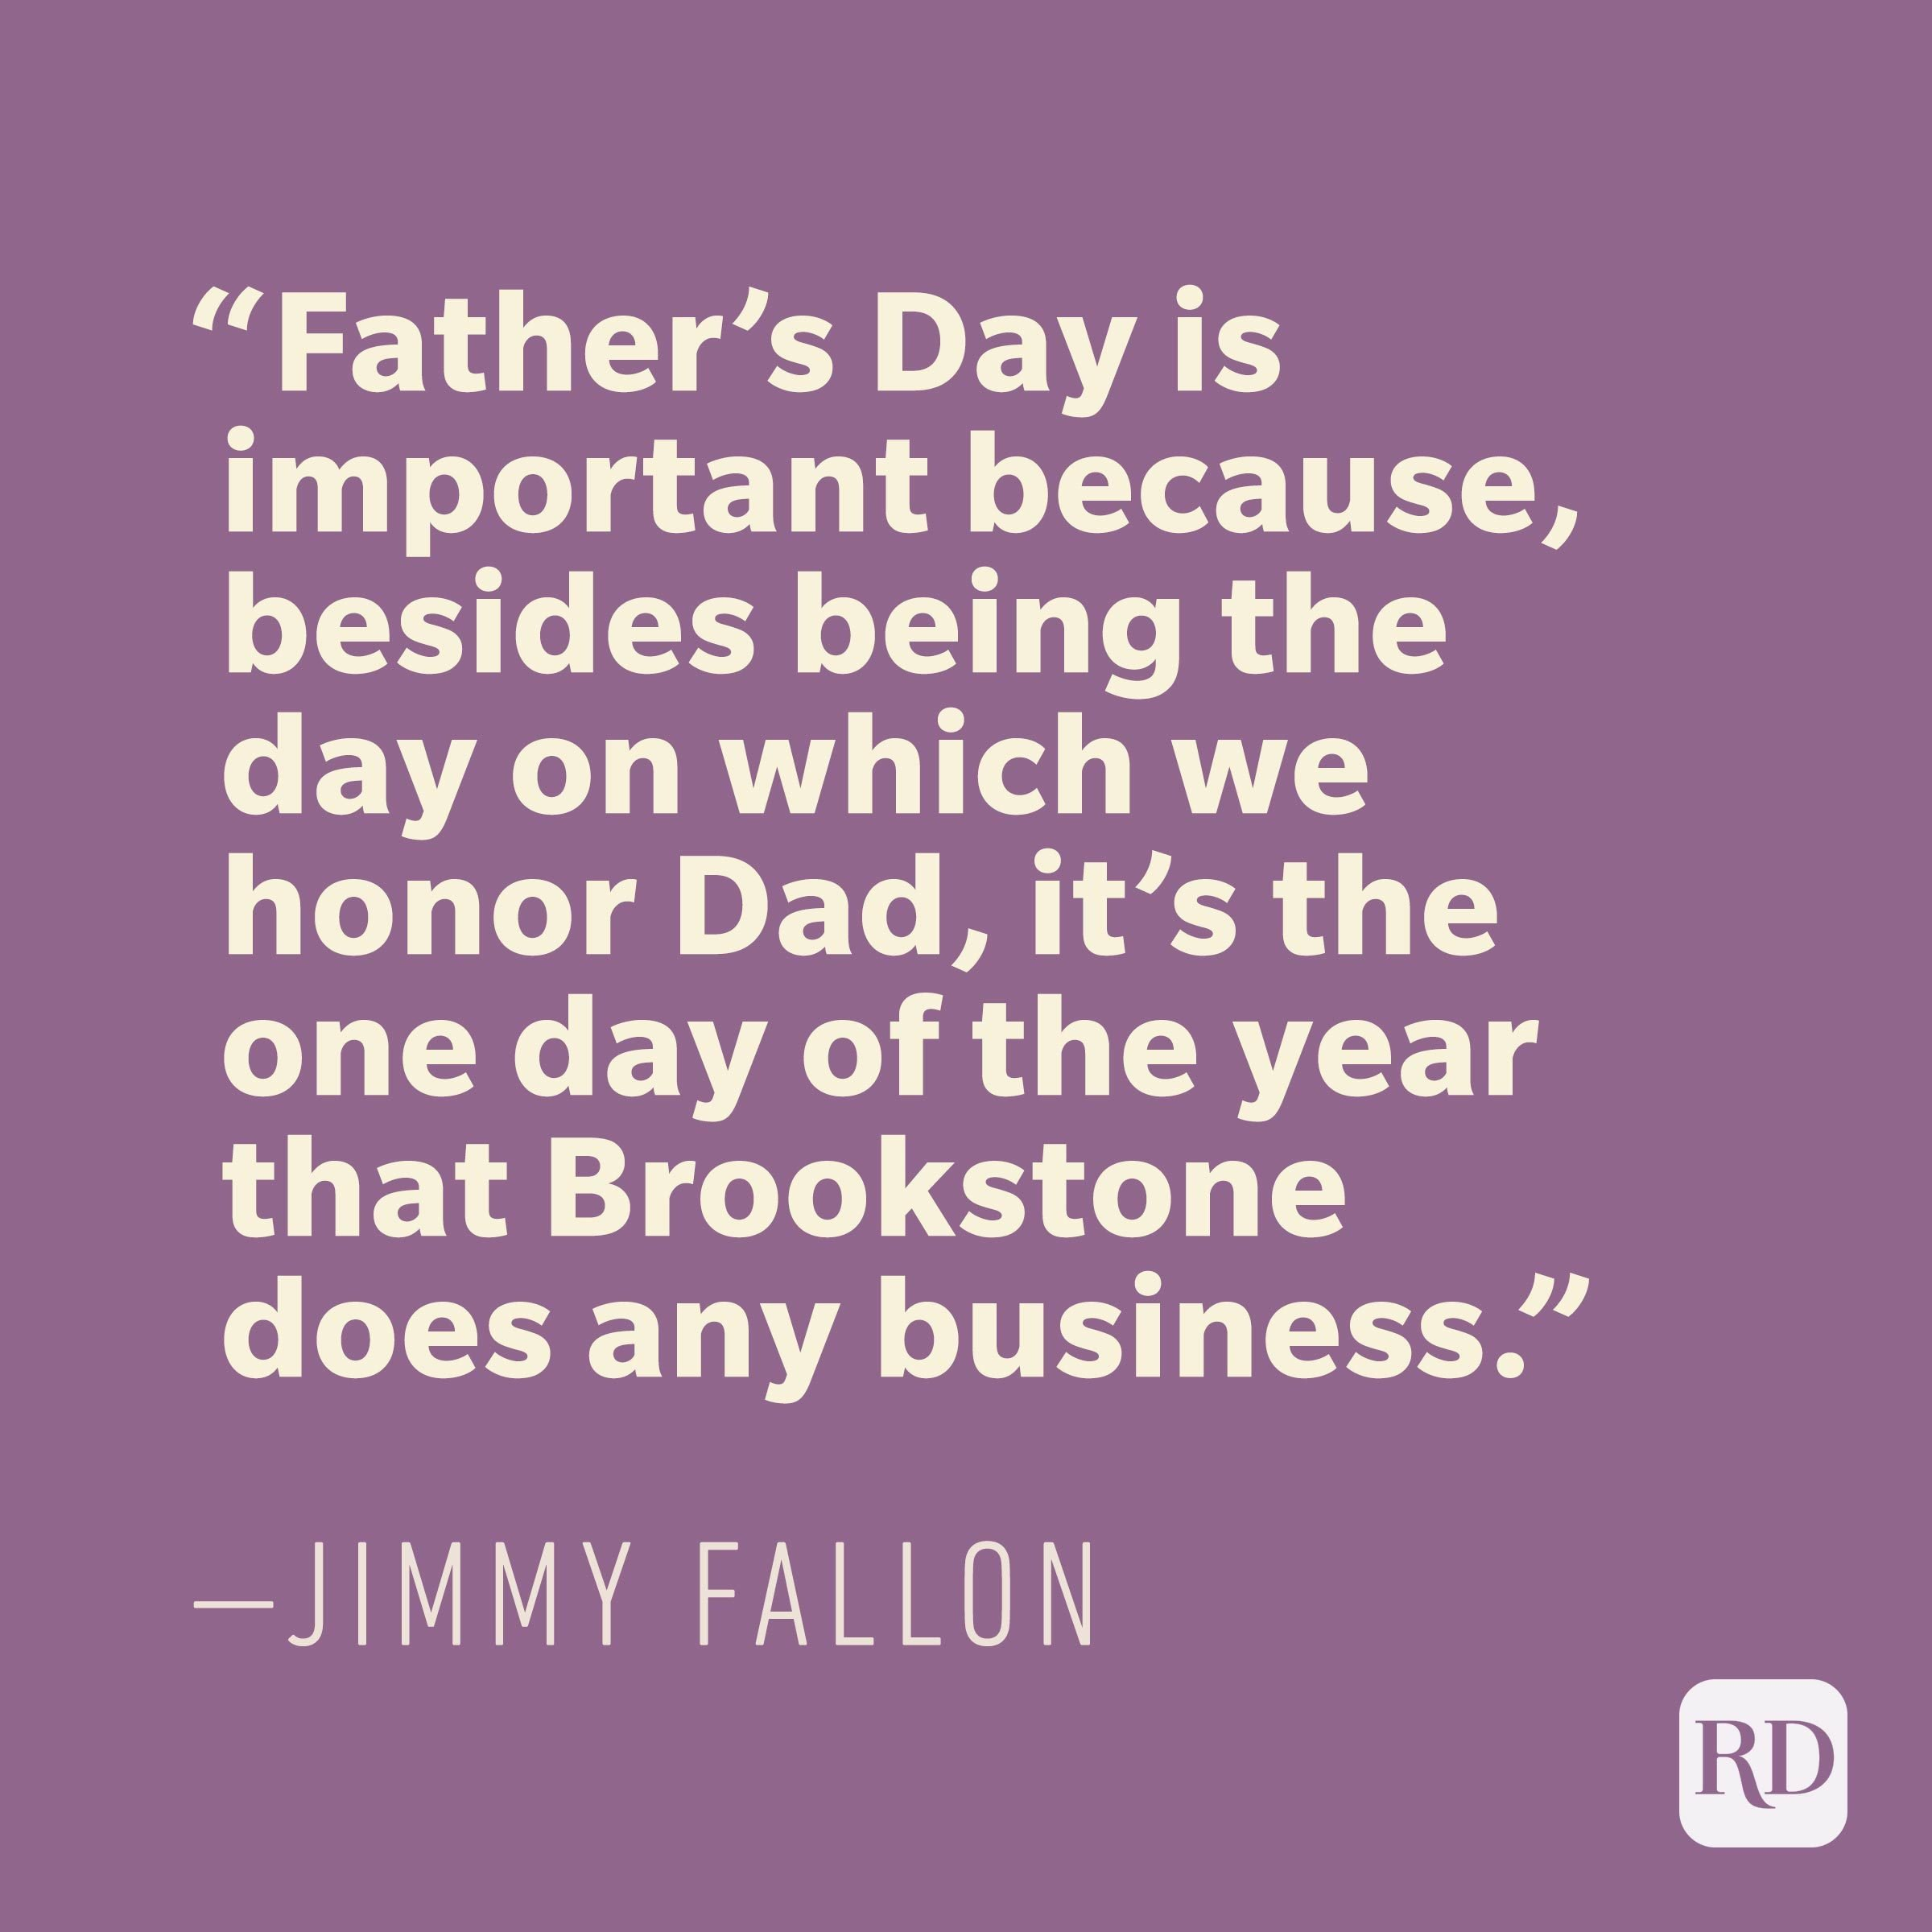 """Father's Day is important because, besides being the day on which we honor Dad, it's the one day of the year that Brookstone does any business."" —JIMMY FALLON"